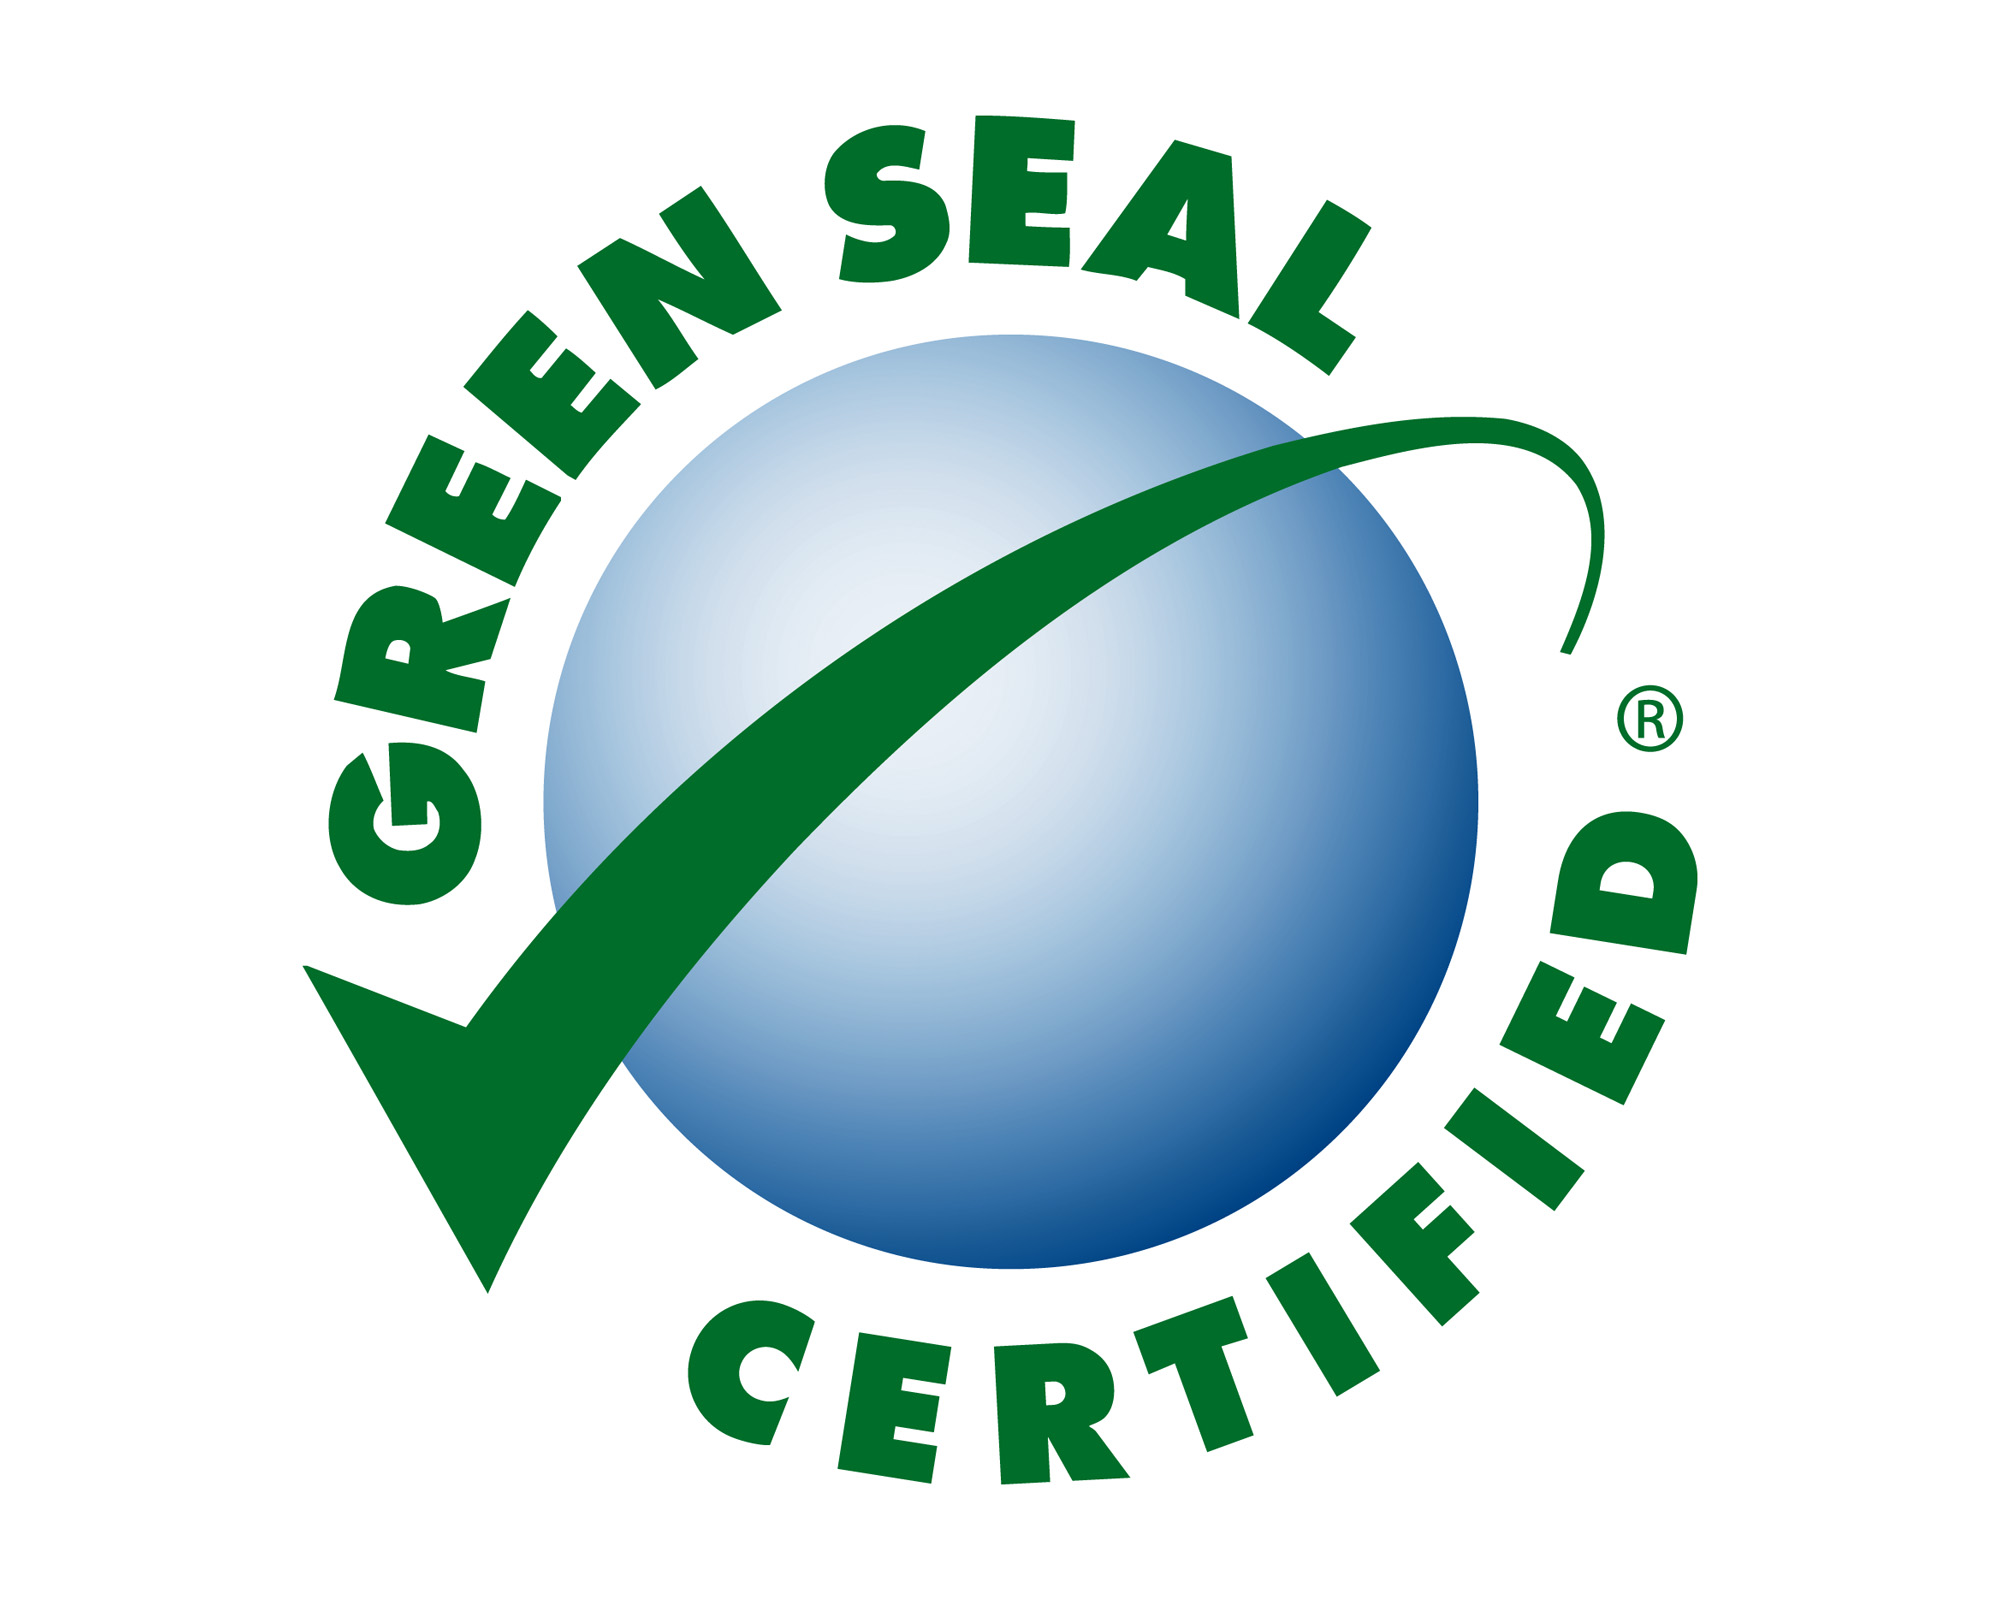 Green Cleaning Product Certifications SparkleTeam